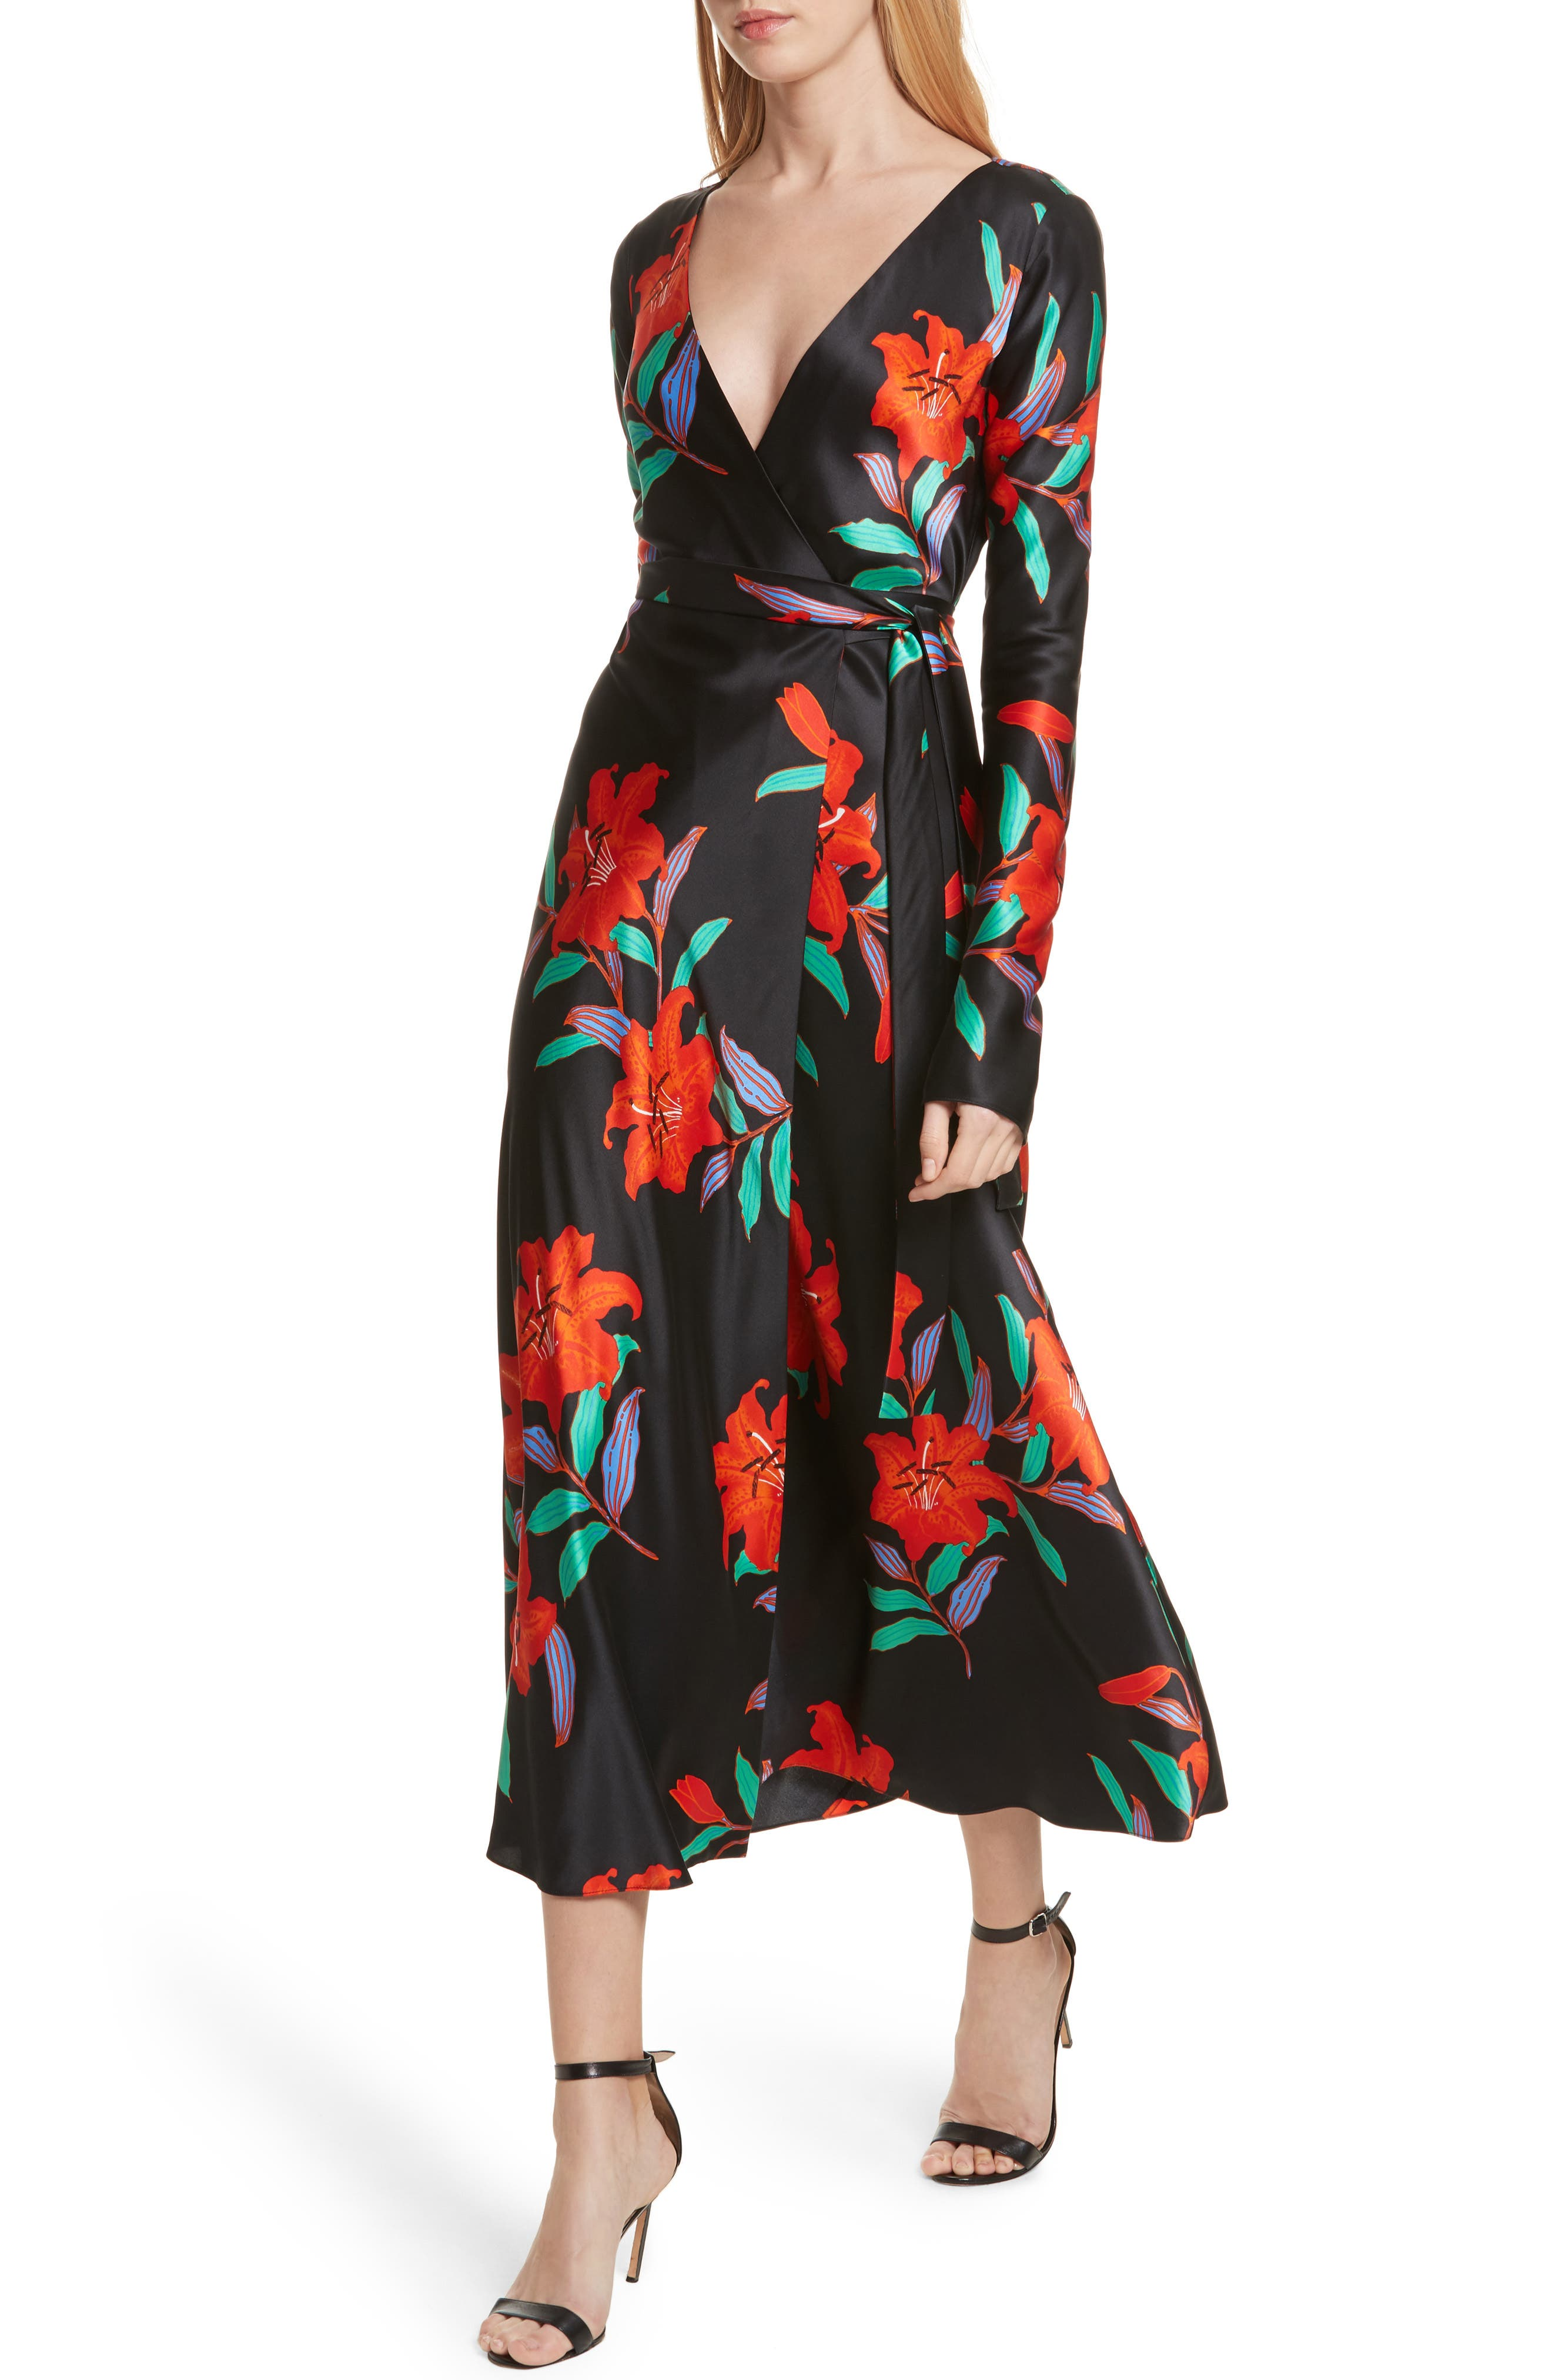 Diane von Furstenberg Floral Print Wrap Silk Dress,                             Alternate thumbnail 4, color,                             001